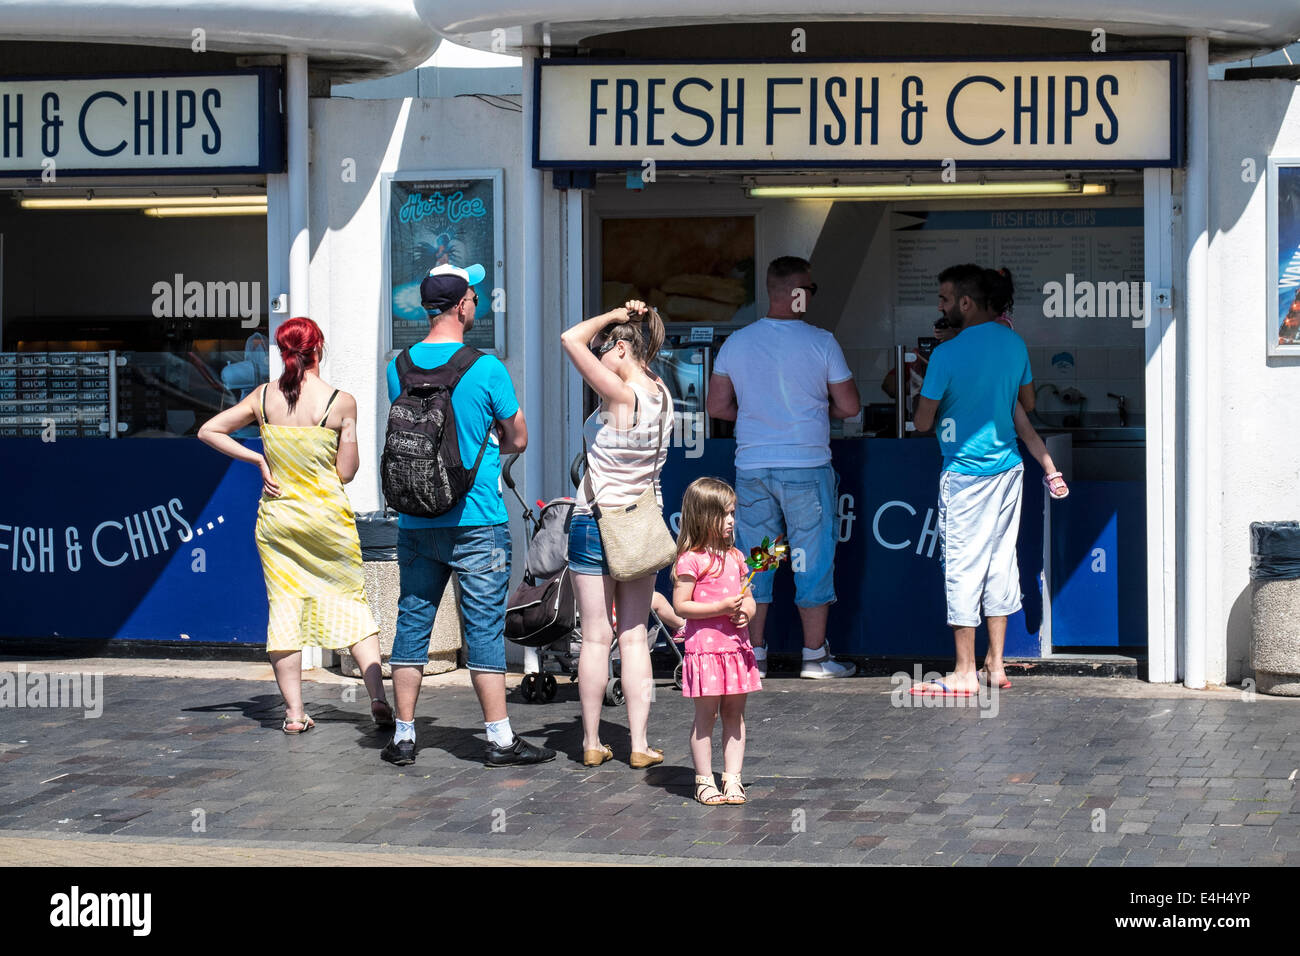 Traditional British sea-side food of Fish and Chips in Blackpool - Stock Image